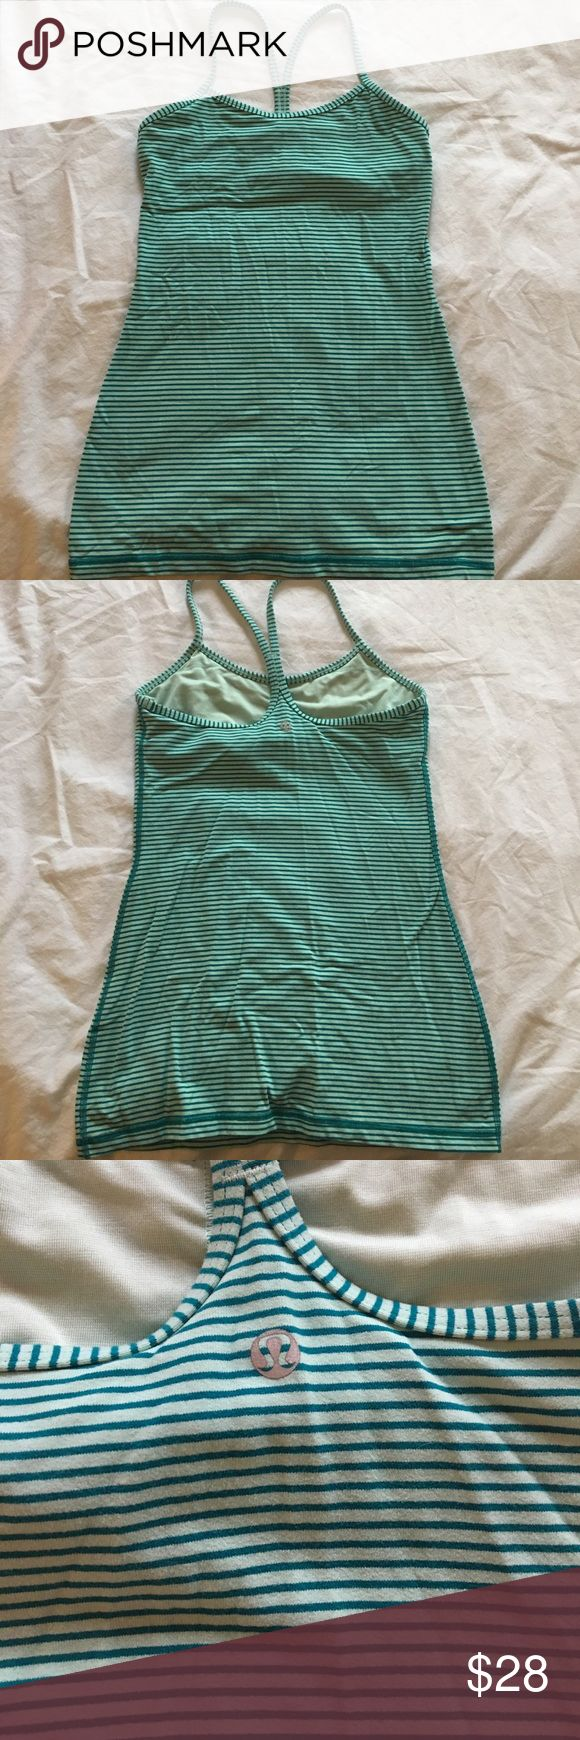 Striped Lululemon racerback tank w/ built in bra Striped Lululemon racerback tank w/ built in bra, form fitting and like new. Dark green and light green thin striped. lululemon athletica Tops Tank Tops